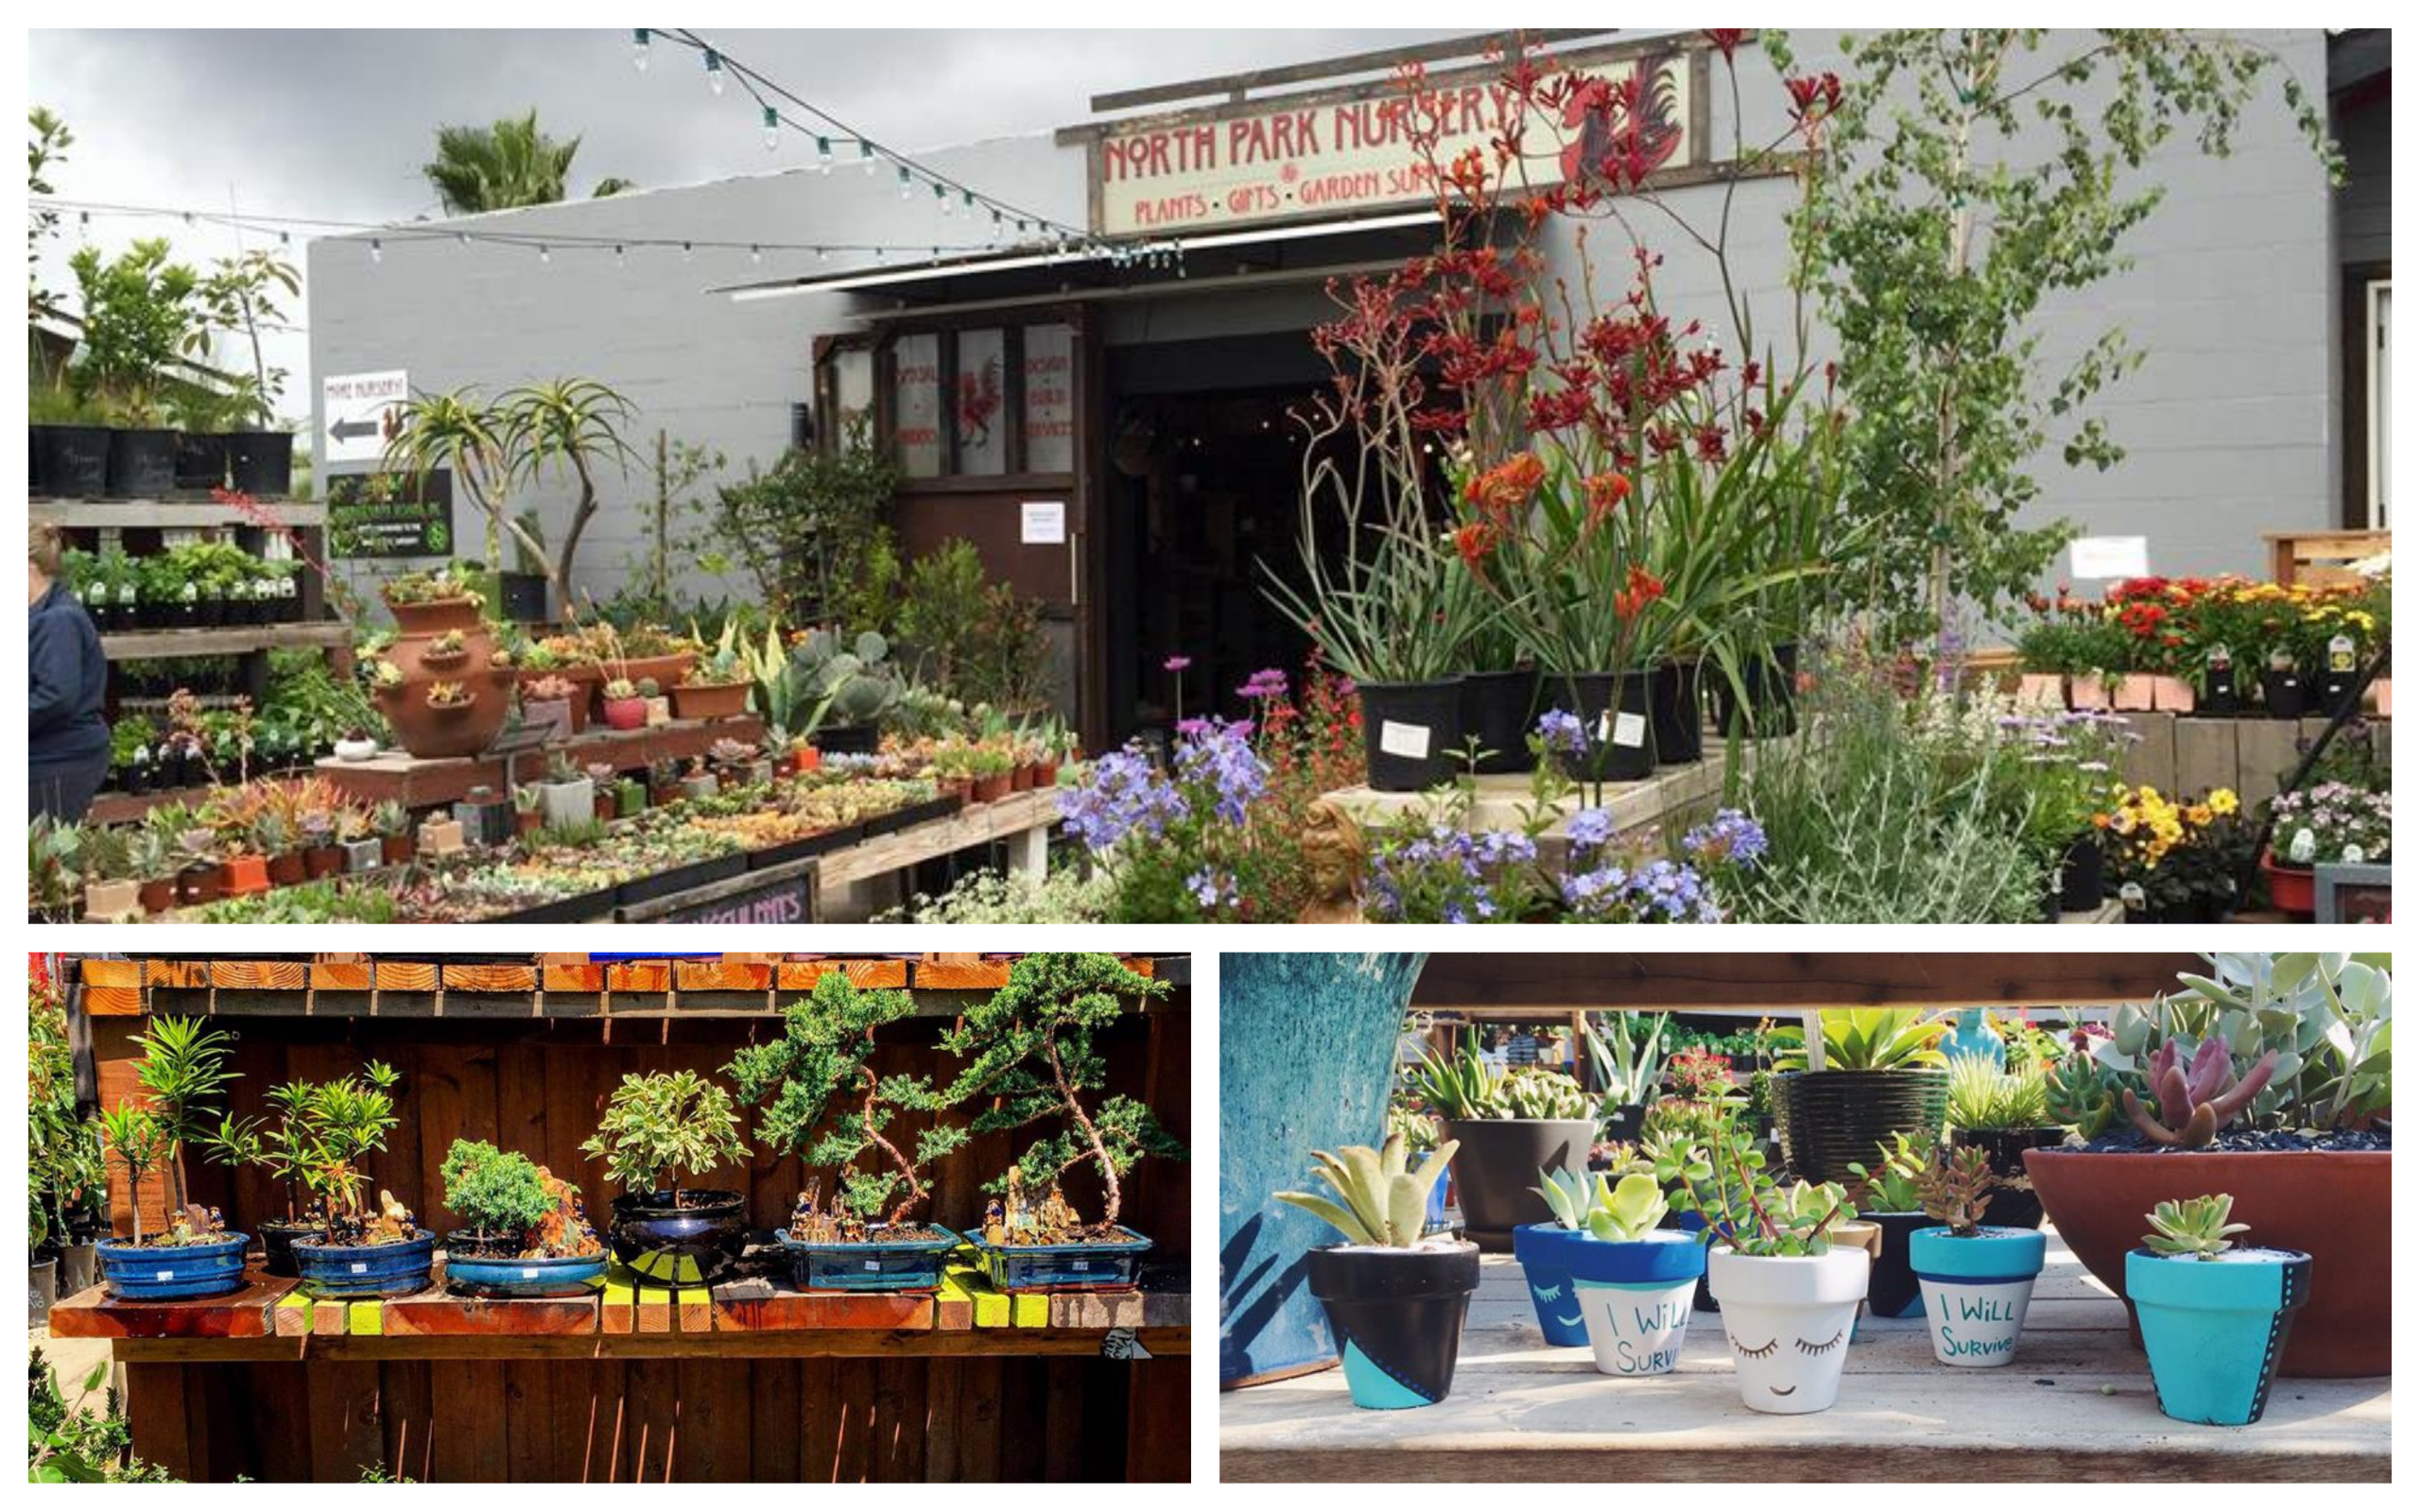 Introducing Our 6 Newest Retail Nursery